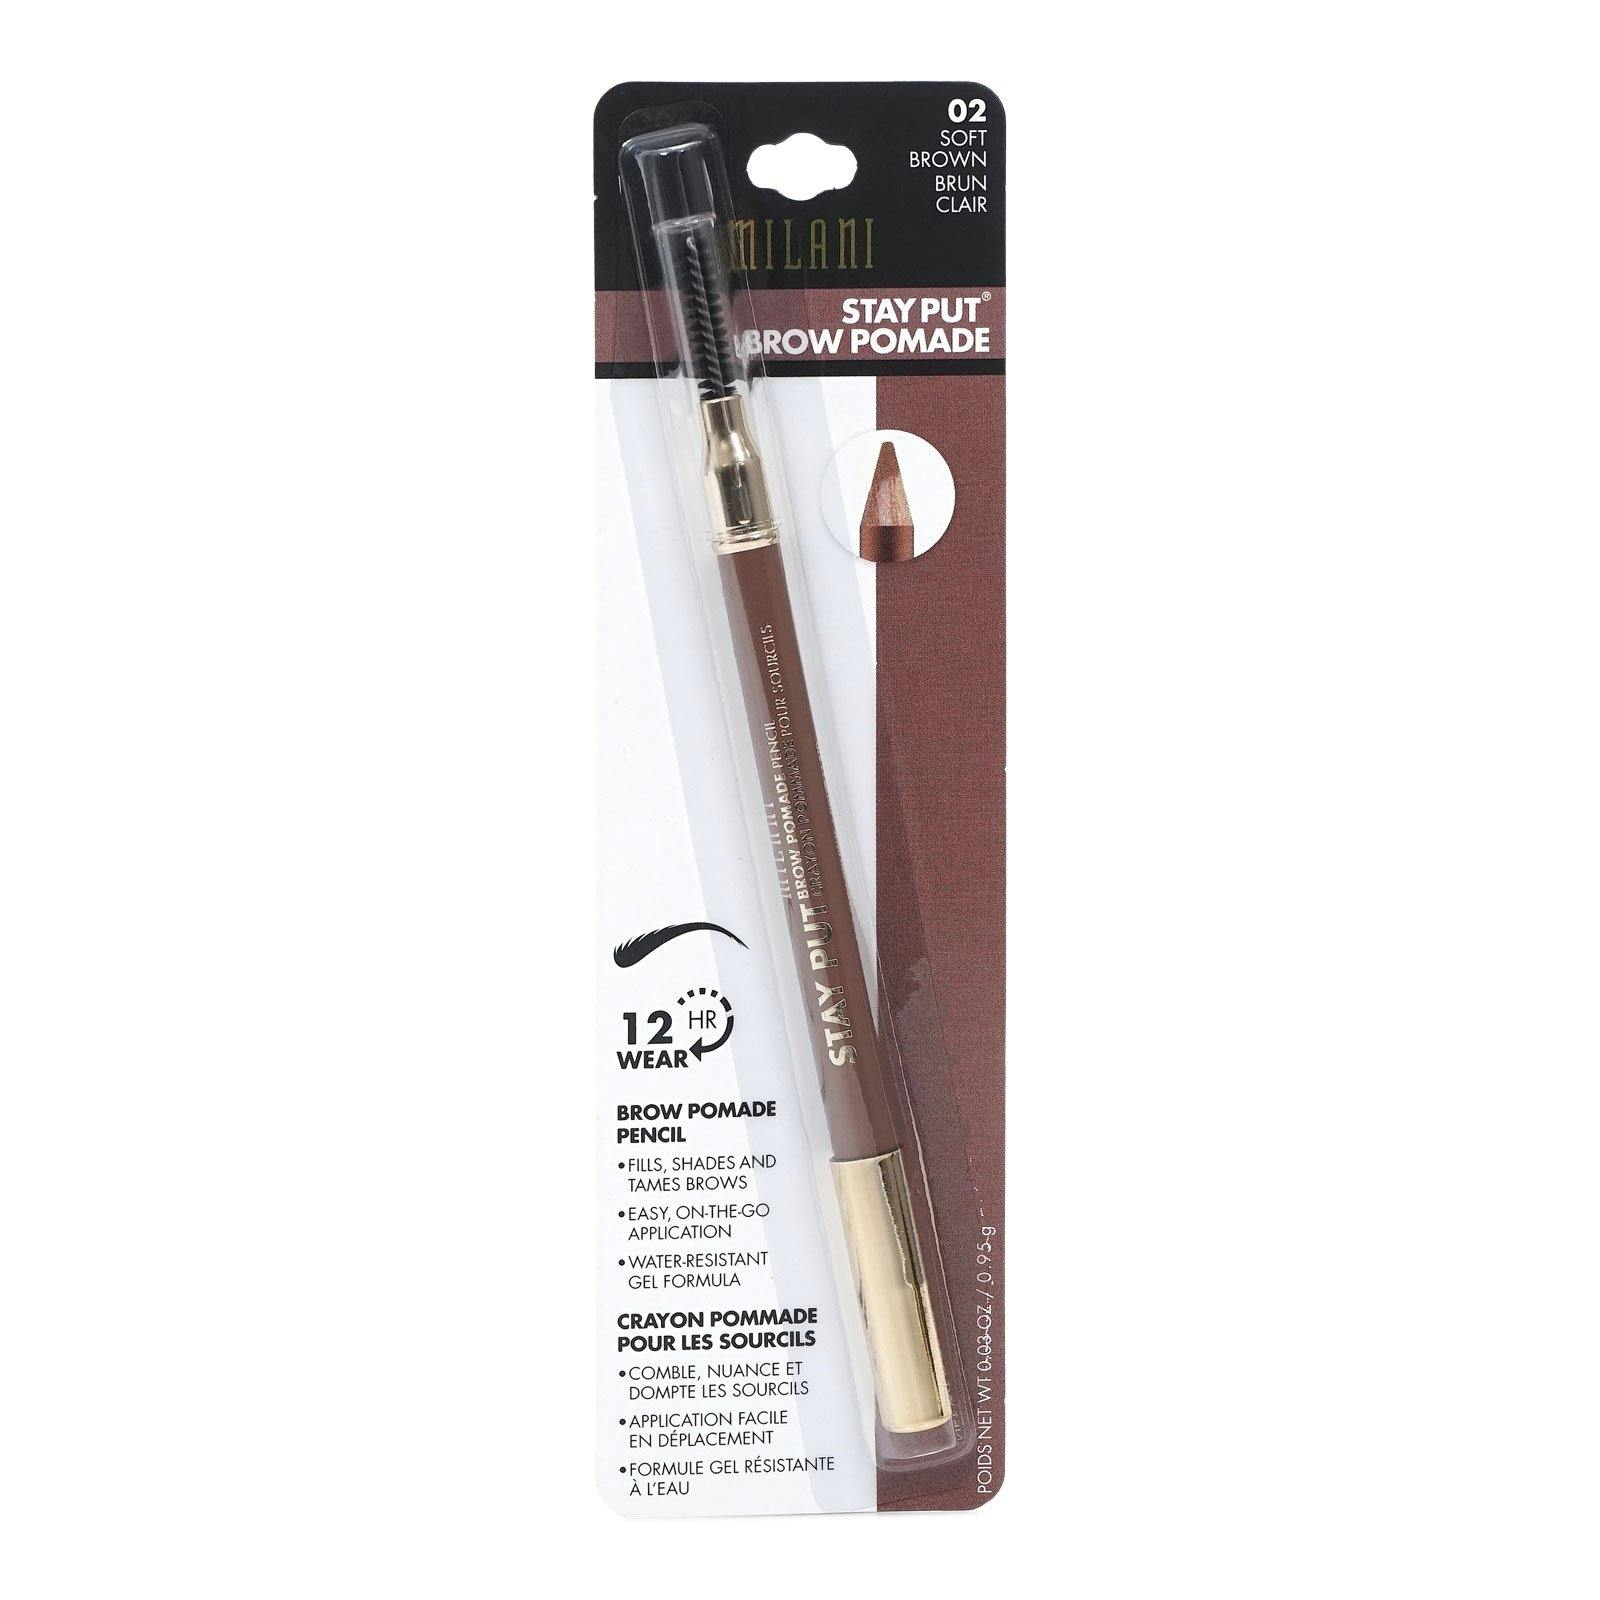 MILANI STAY PUT BROW POMADE PENCIL - SOFT BROWN (24/cs)